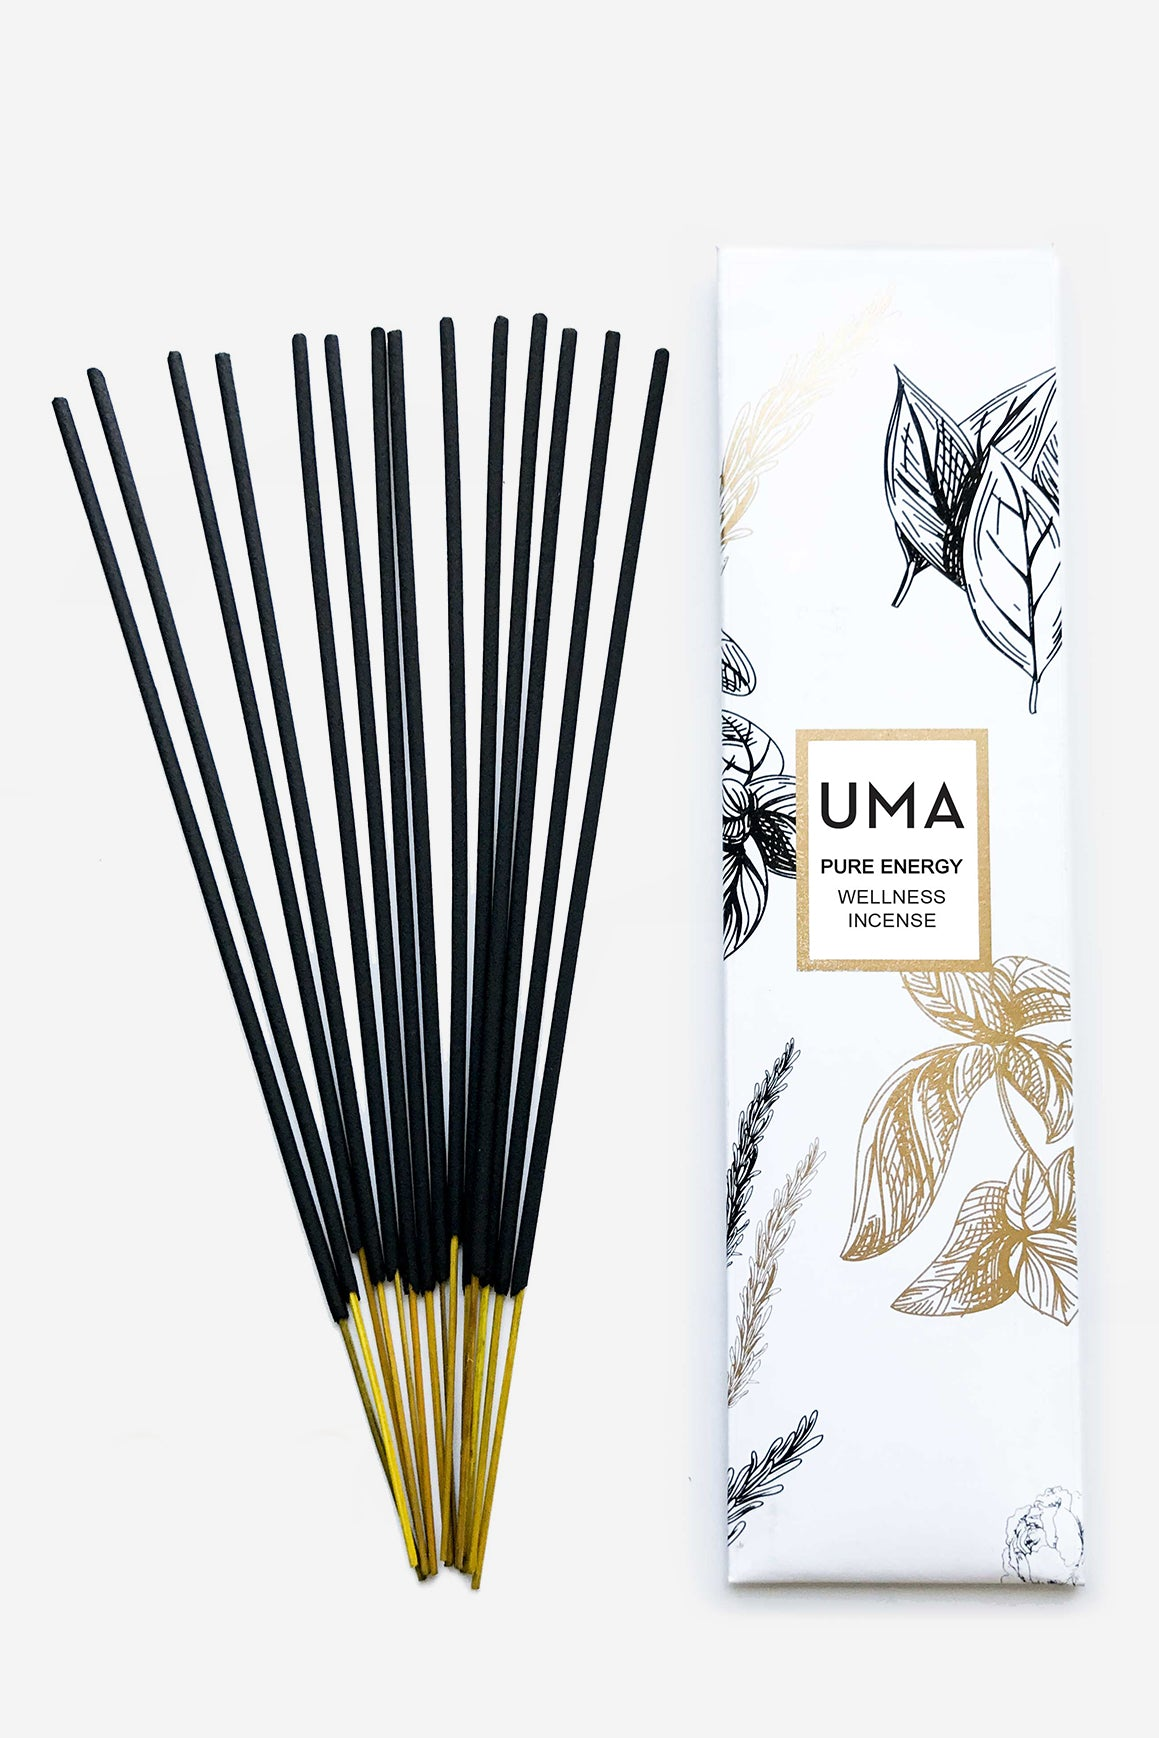 Pure Energy Wellness Incense